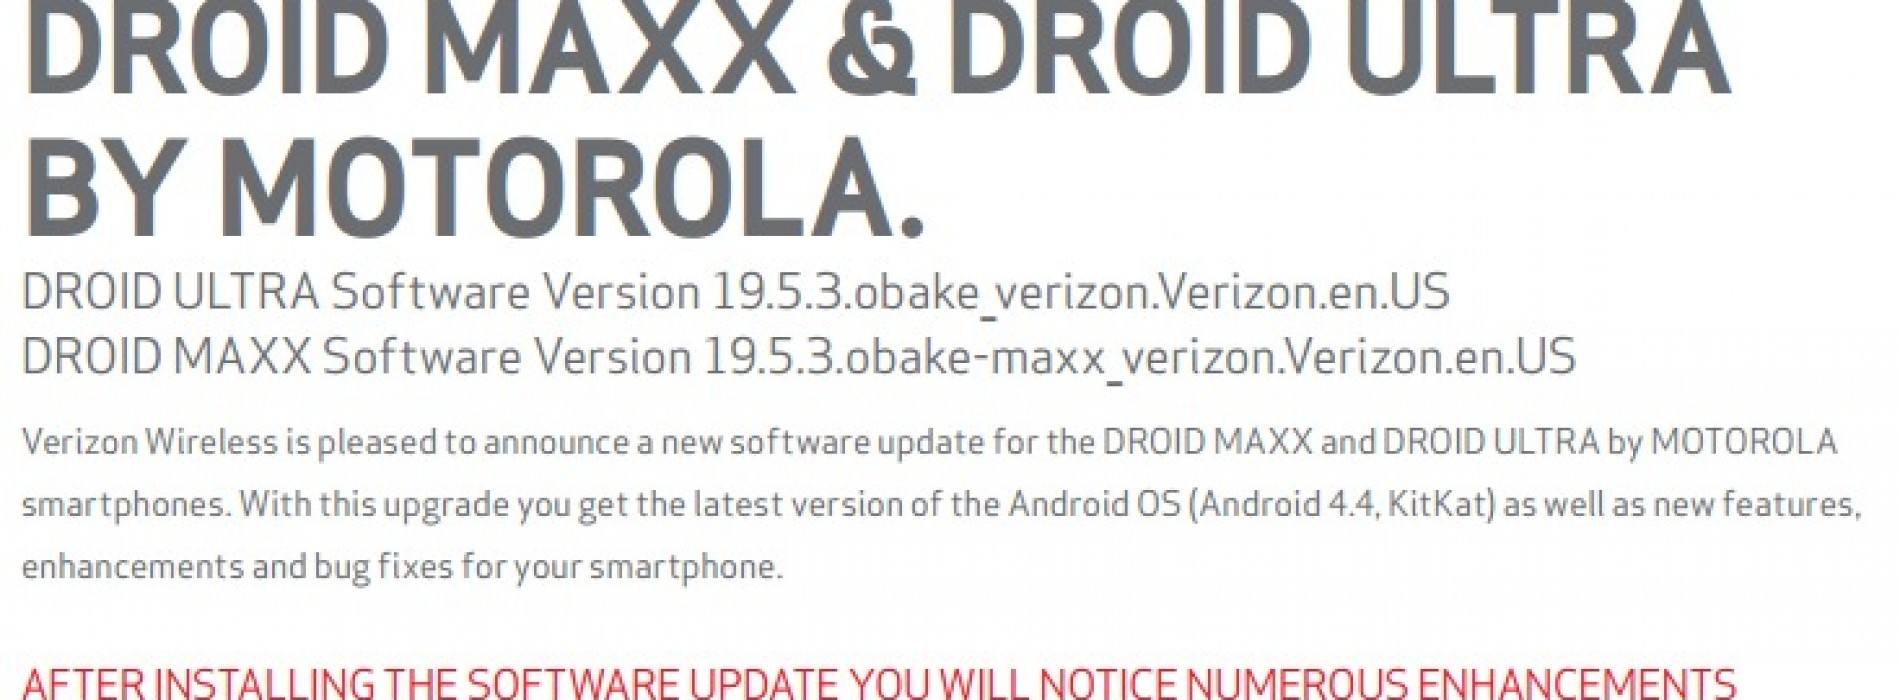 Droid Ultra, Droid Maxx, Droid Mini receiving Android KitKat 4.4 today